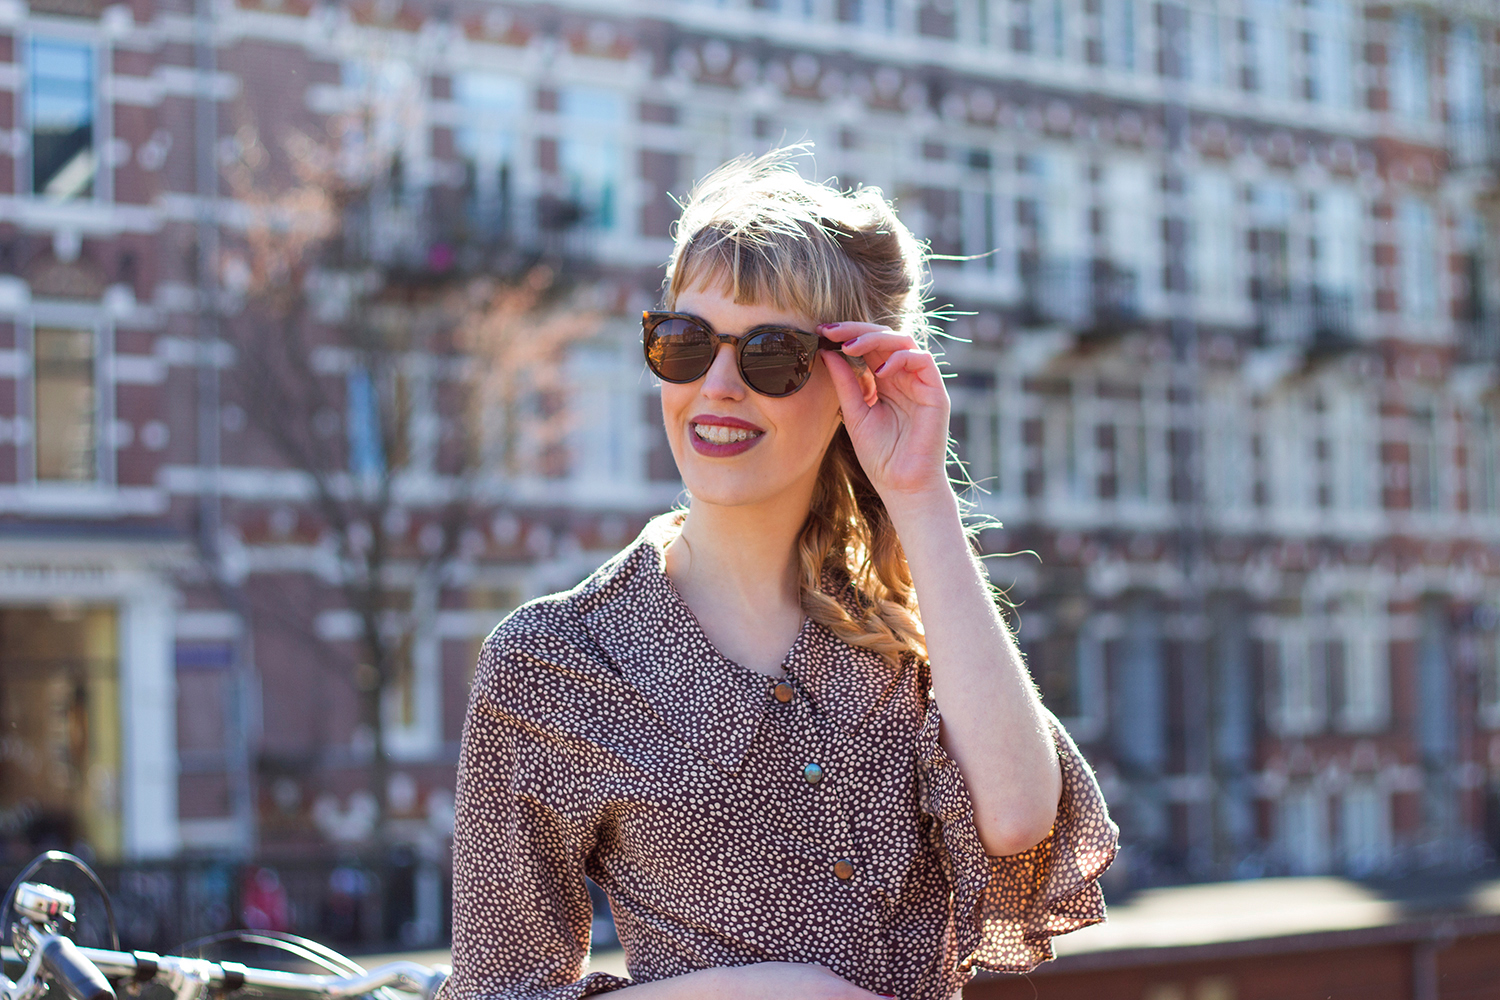 Retromantisch retro girl gang fashion blog costes vintage polkadot asos skirt sunglasses bangs ruffle